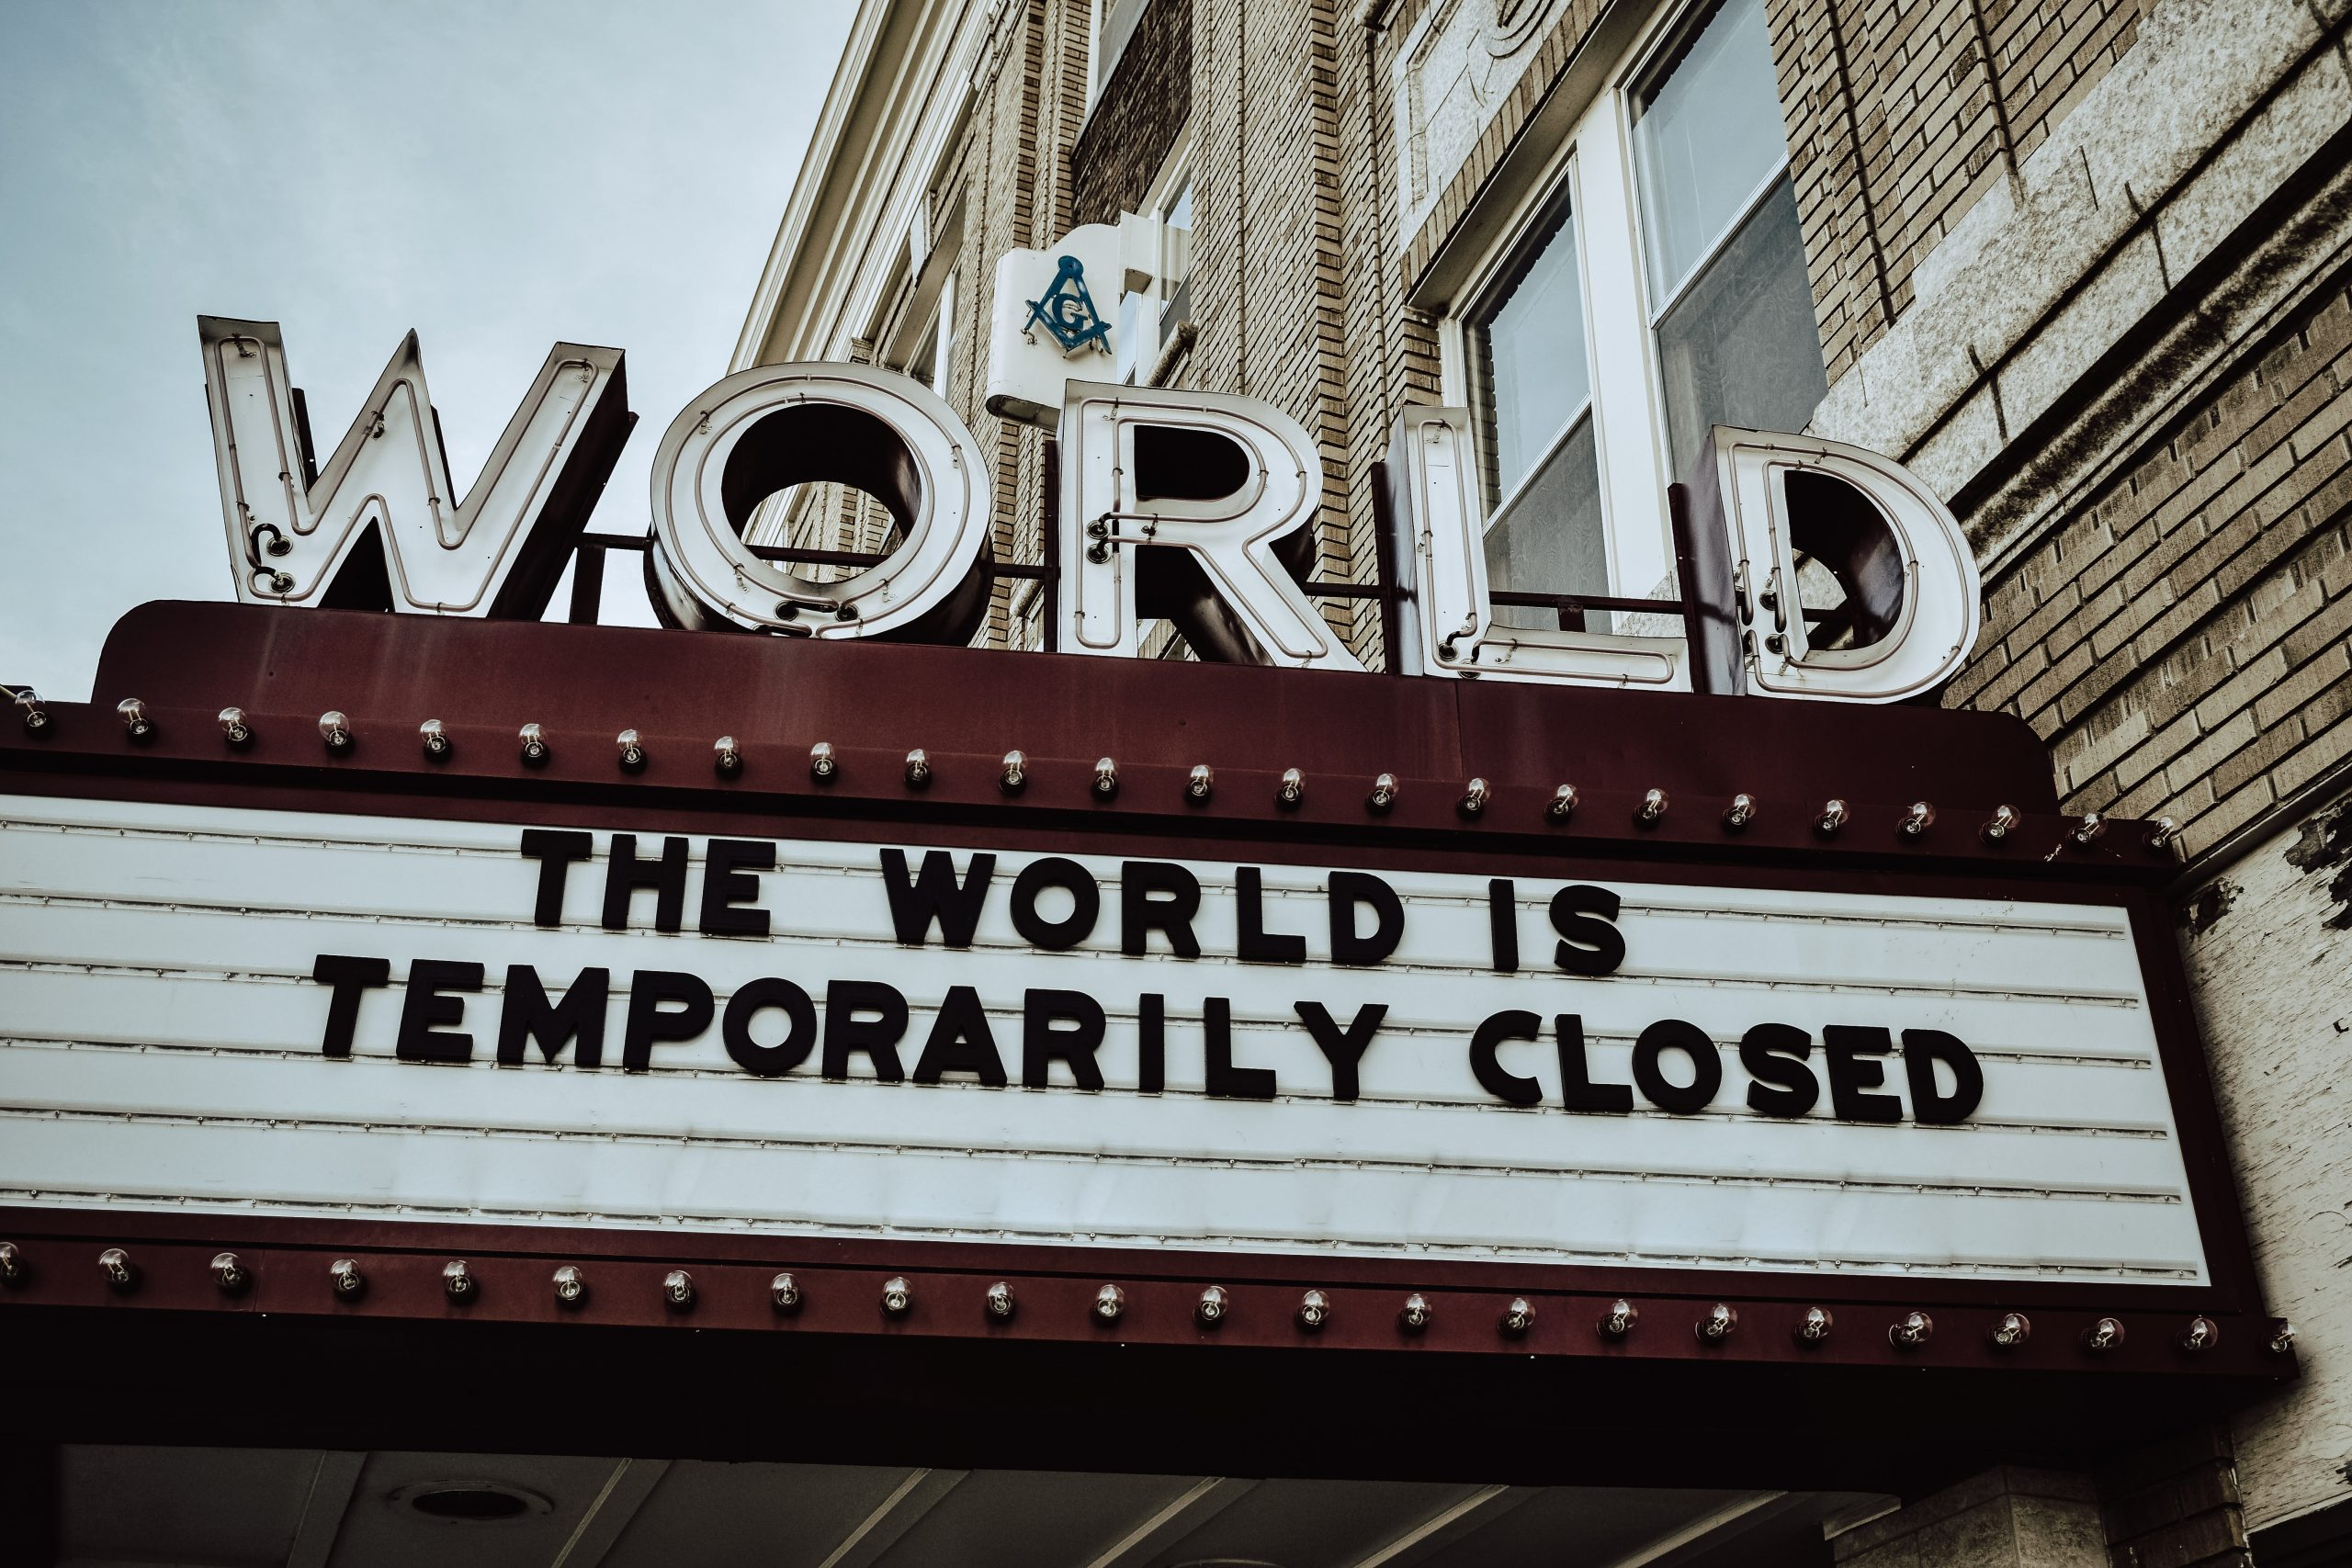 "billboard saying 'The World is temporarily closed"" photo by Edwin Hooper on Unsplash"